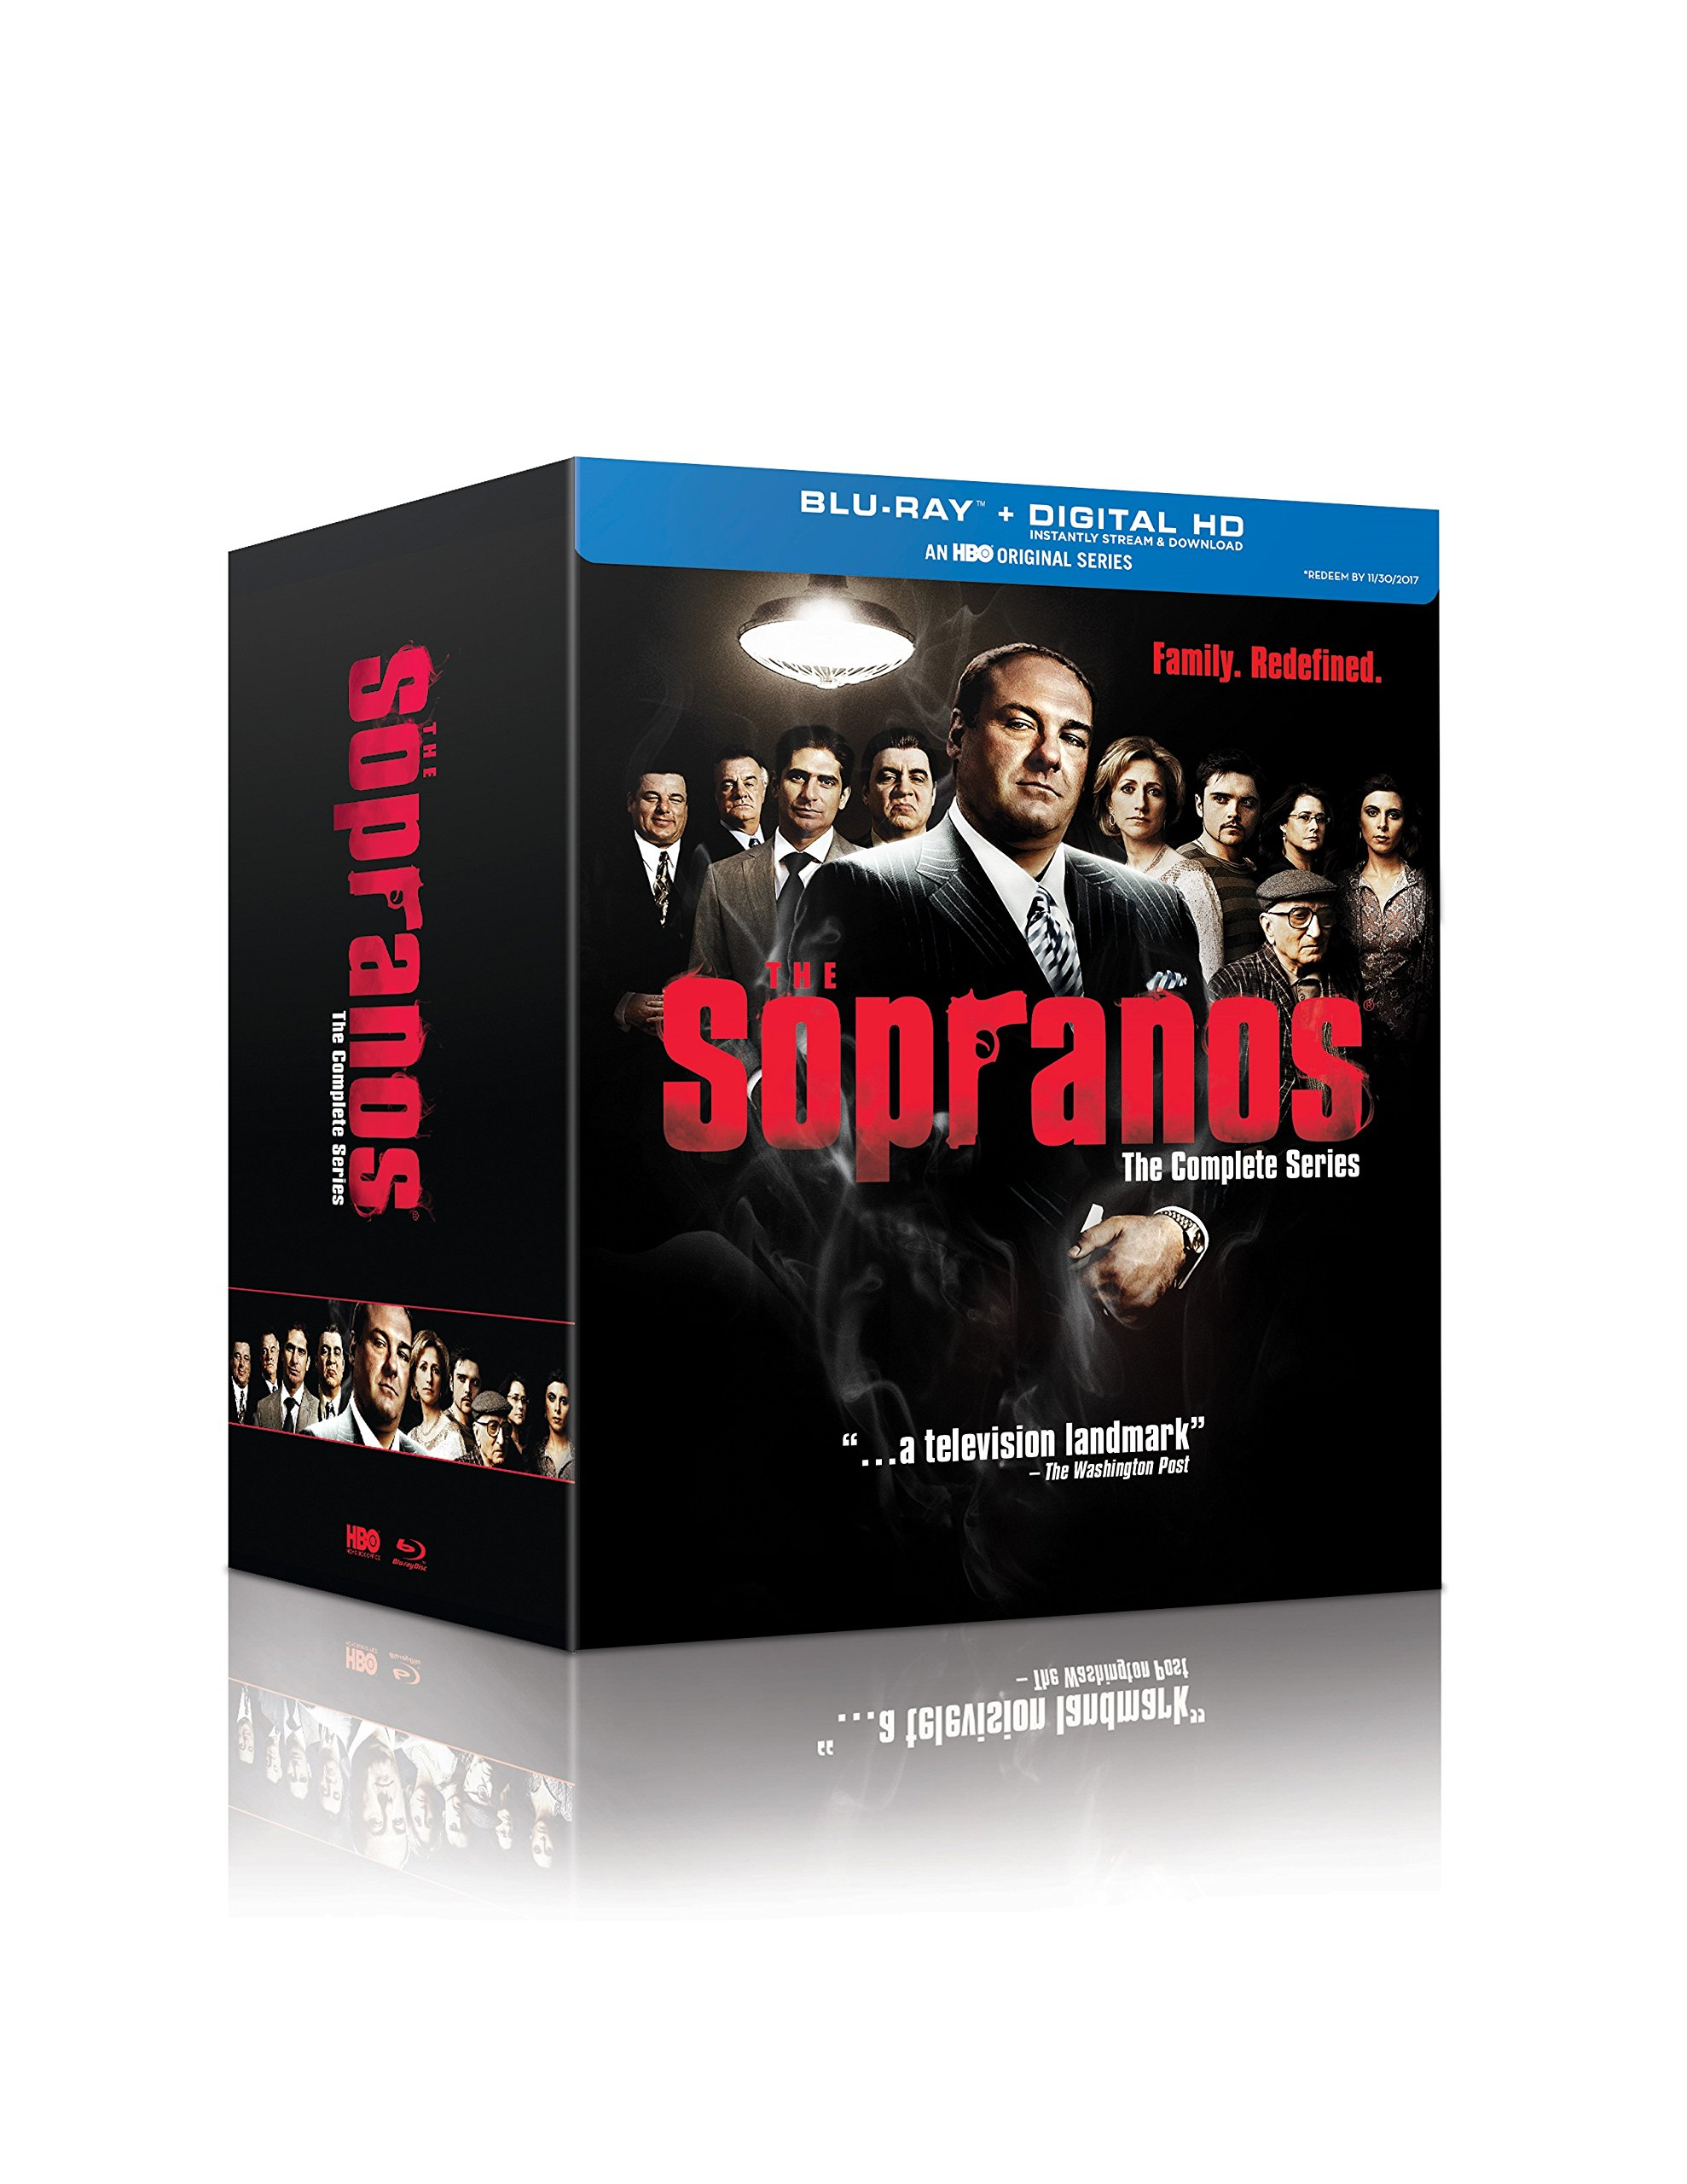 Blu-ray : The Sopranos: The Complete Series (Boxed Set, , Slipsleeve Packaging, 28 Disc)